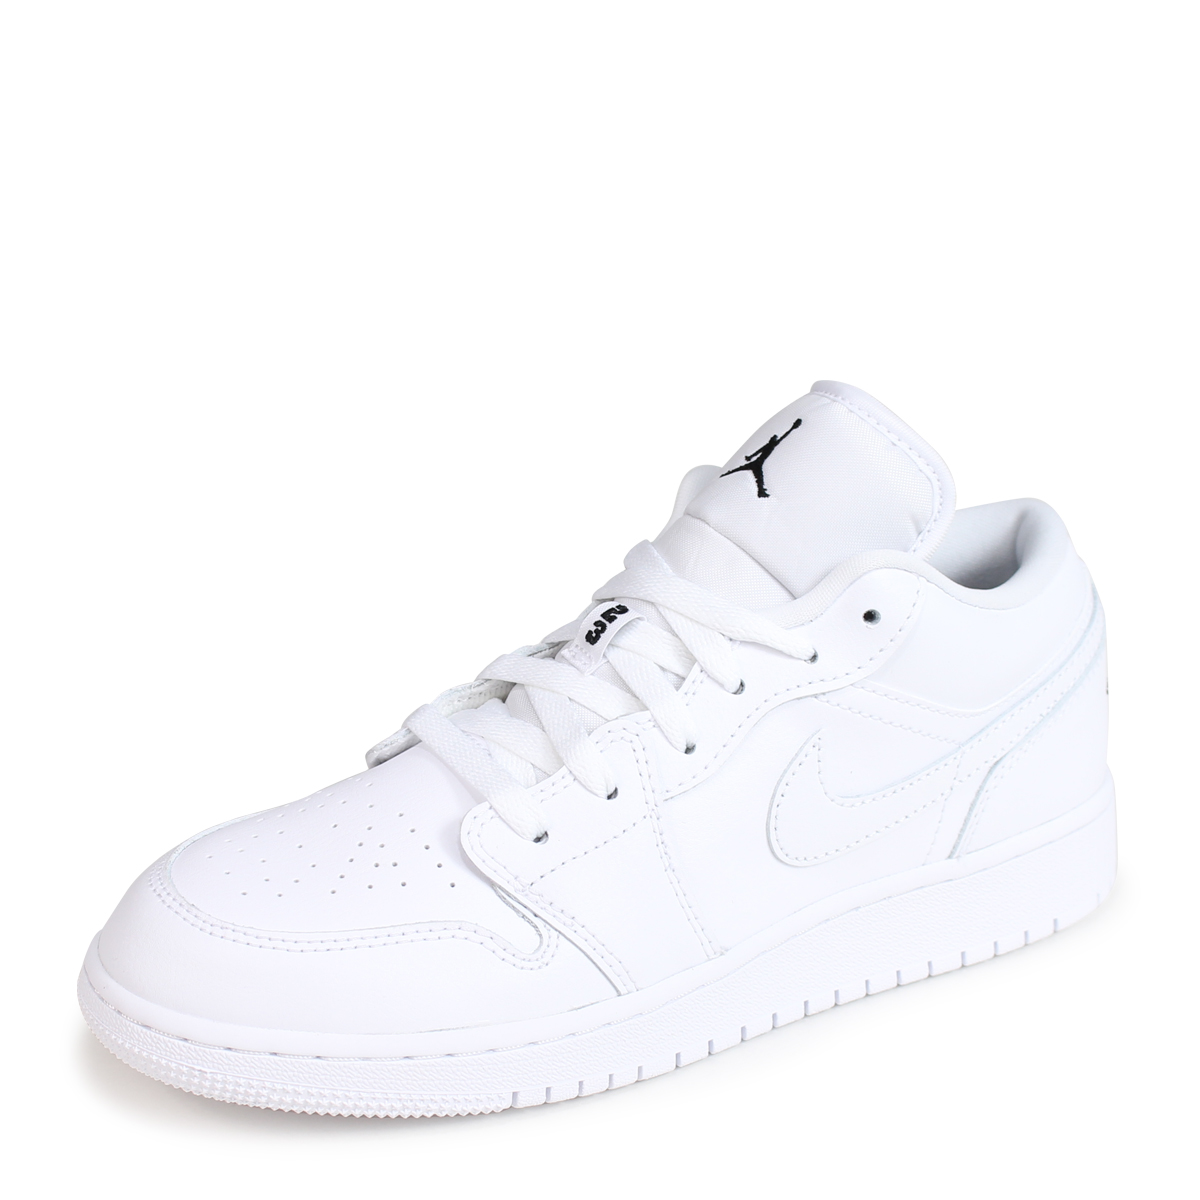 702d43915ff ALLSPORTS  Nike NIKE Air Jordan 1 Lady s sneakers AIR JORDAN 1 LOW ...